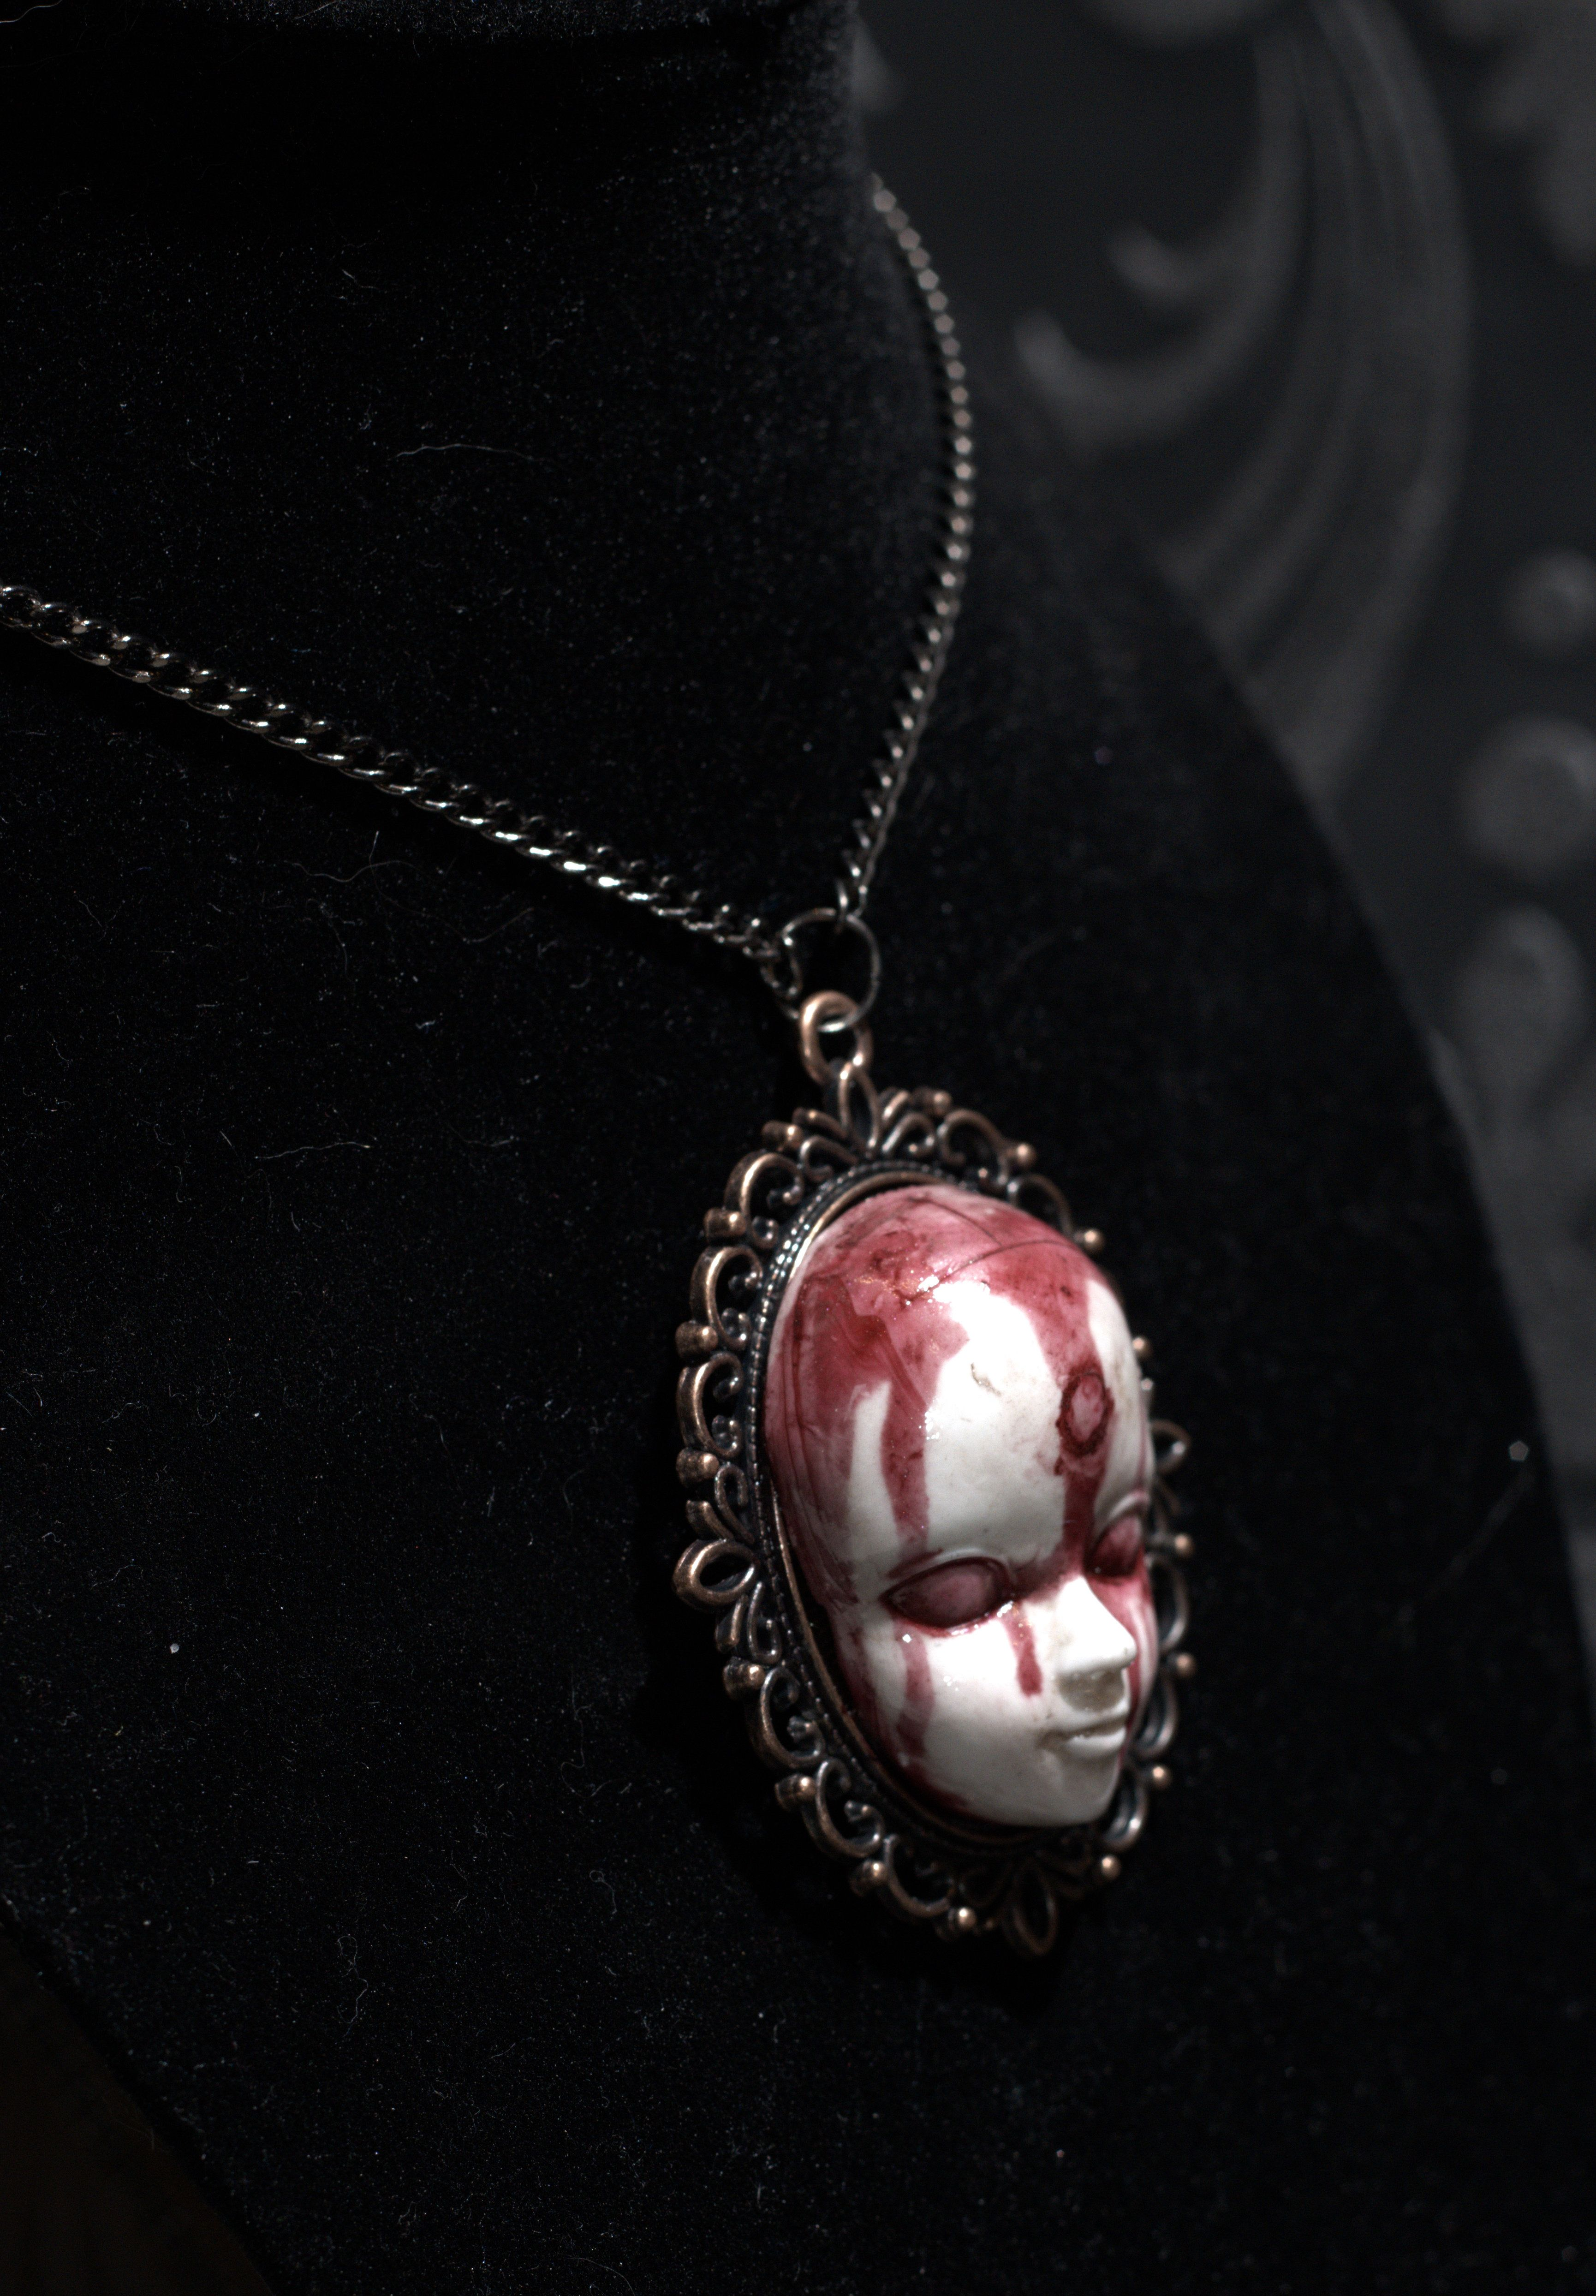 Creepy deformed face pendent necklace hand made bronze